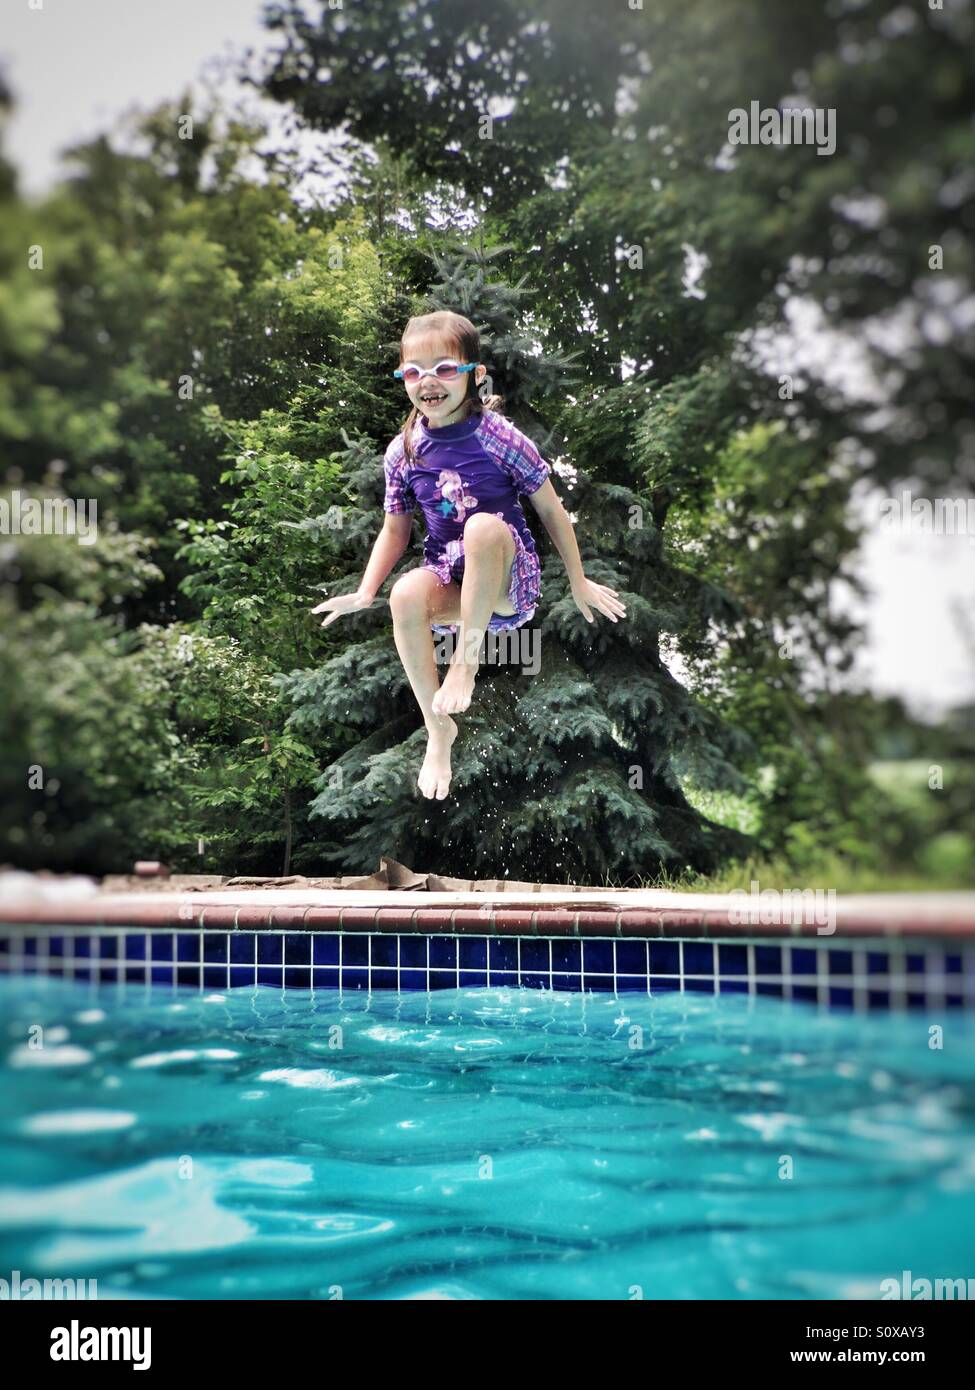 Girl wearing purple suit and swim goggles jumping into a swimming pool - Stock Image